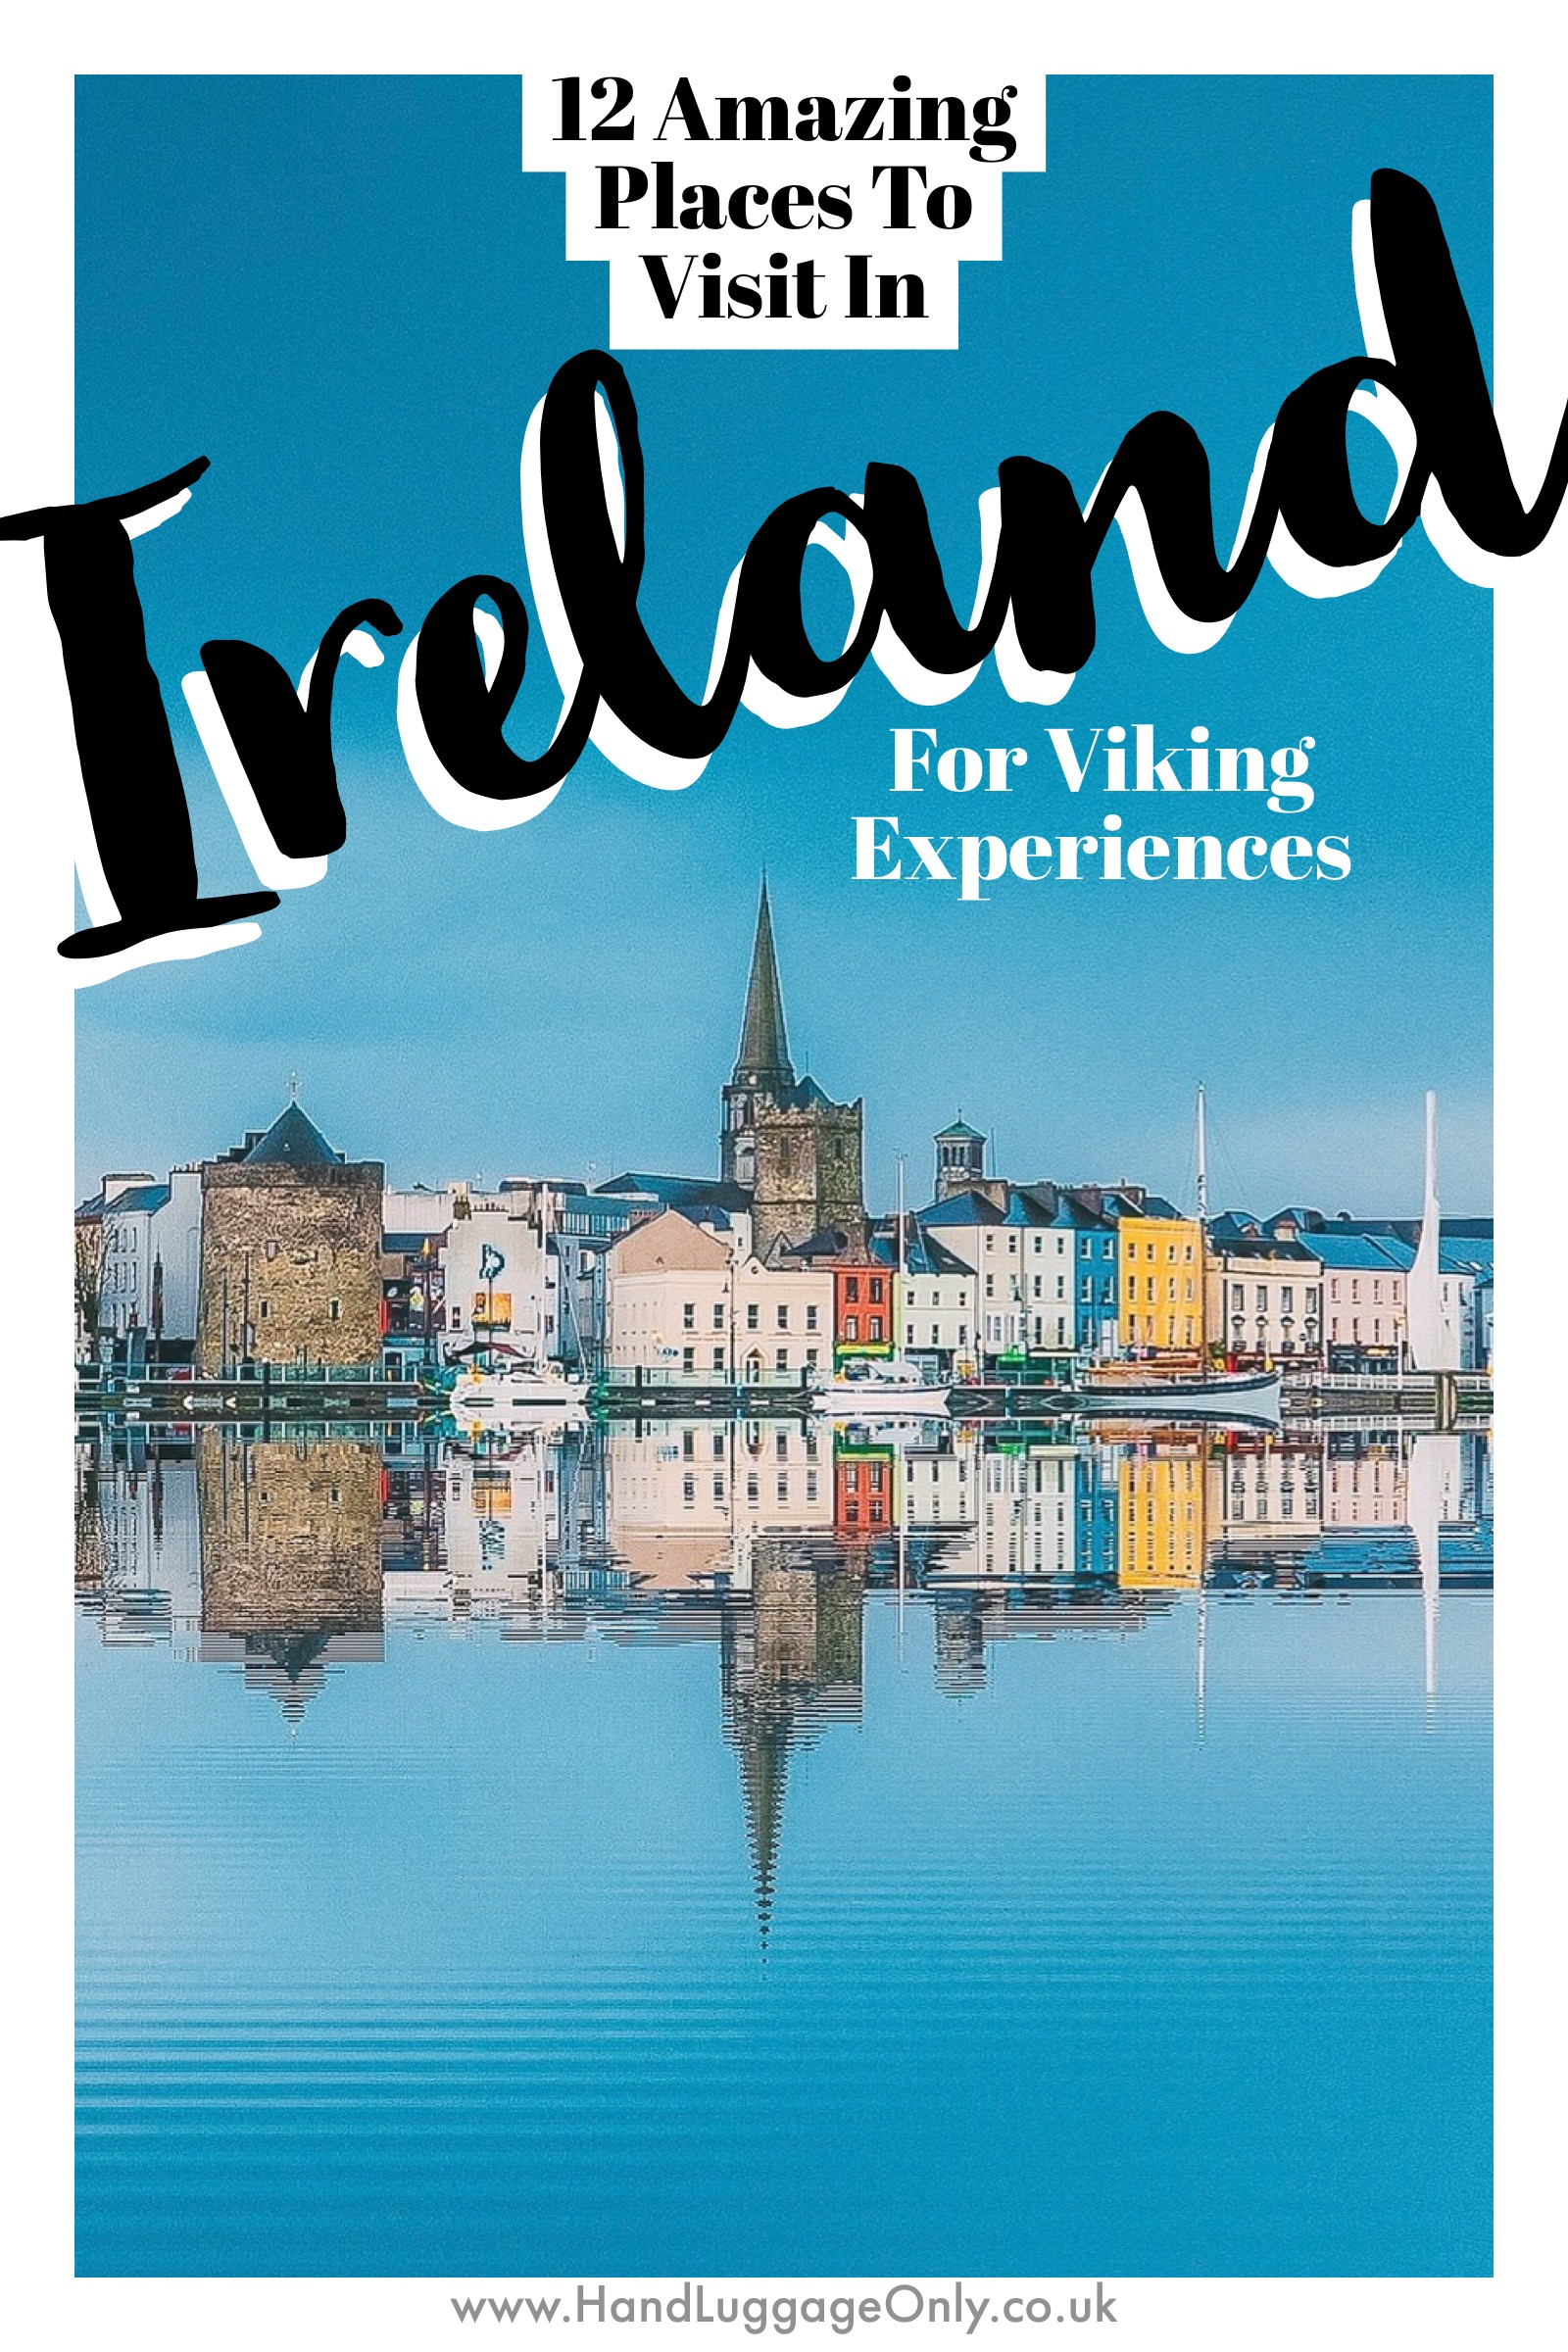 12 Amazing Places To Visit In Ireland For Real Viking Experiences (1)